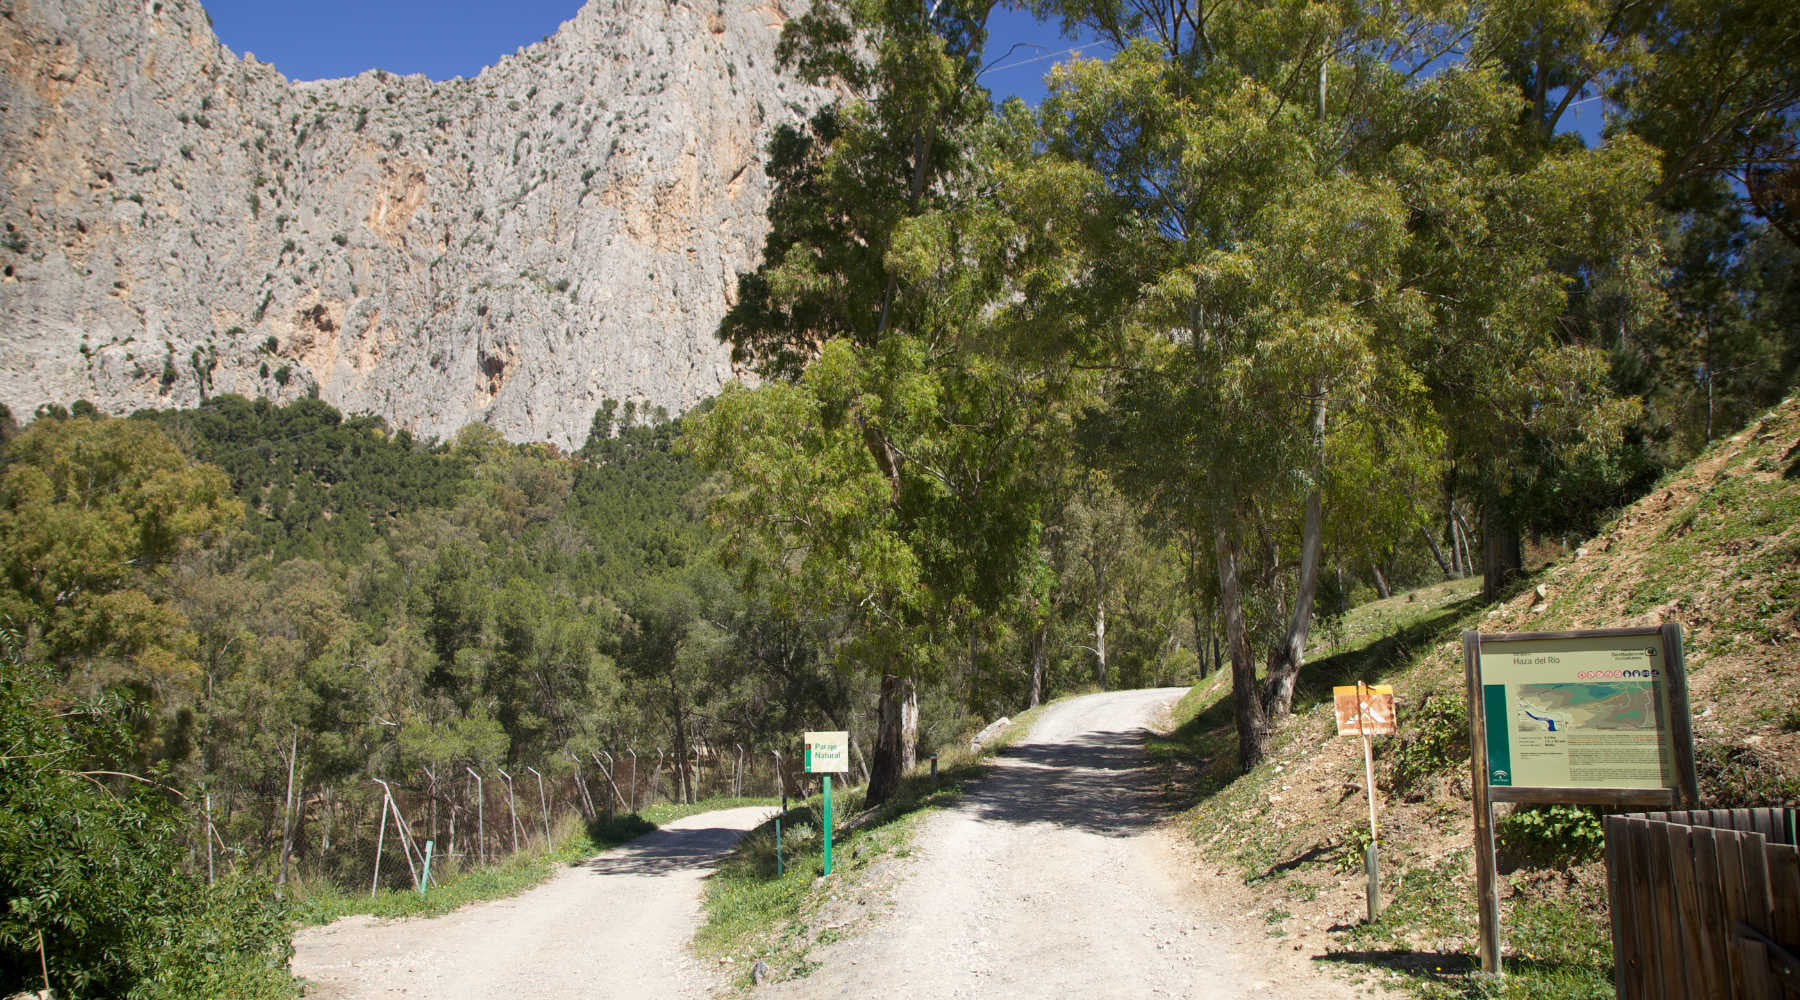 Jo Blogs El Chorro: searching for an elusive staircase